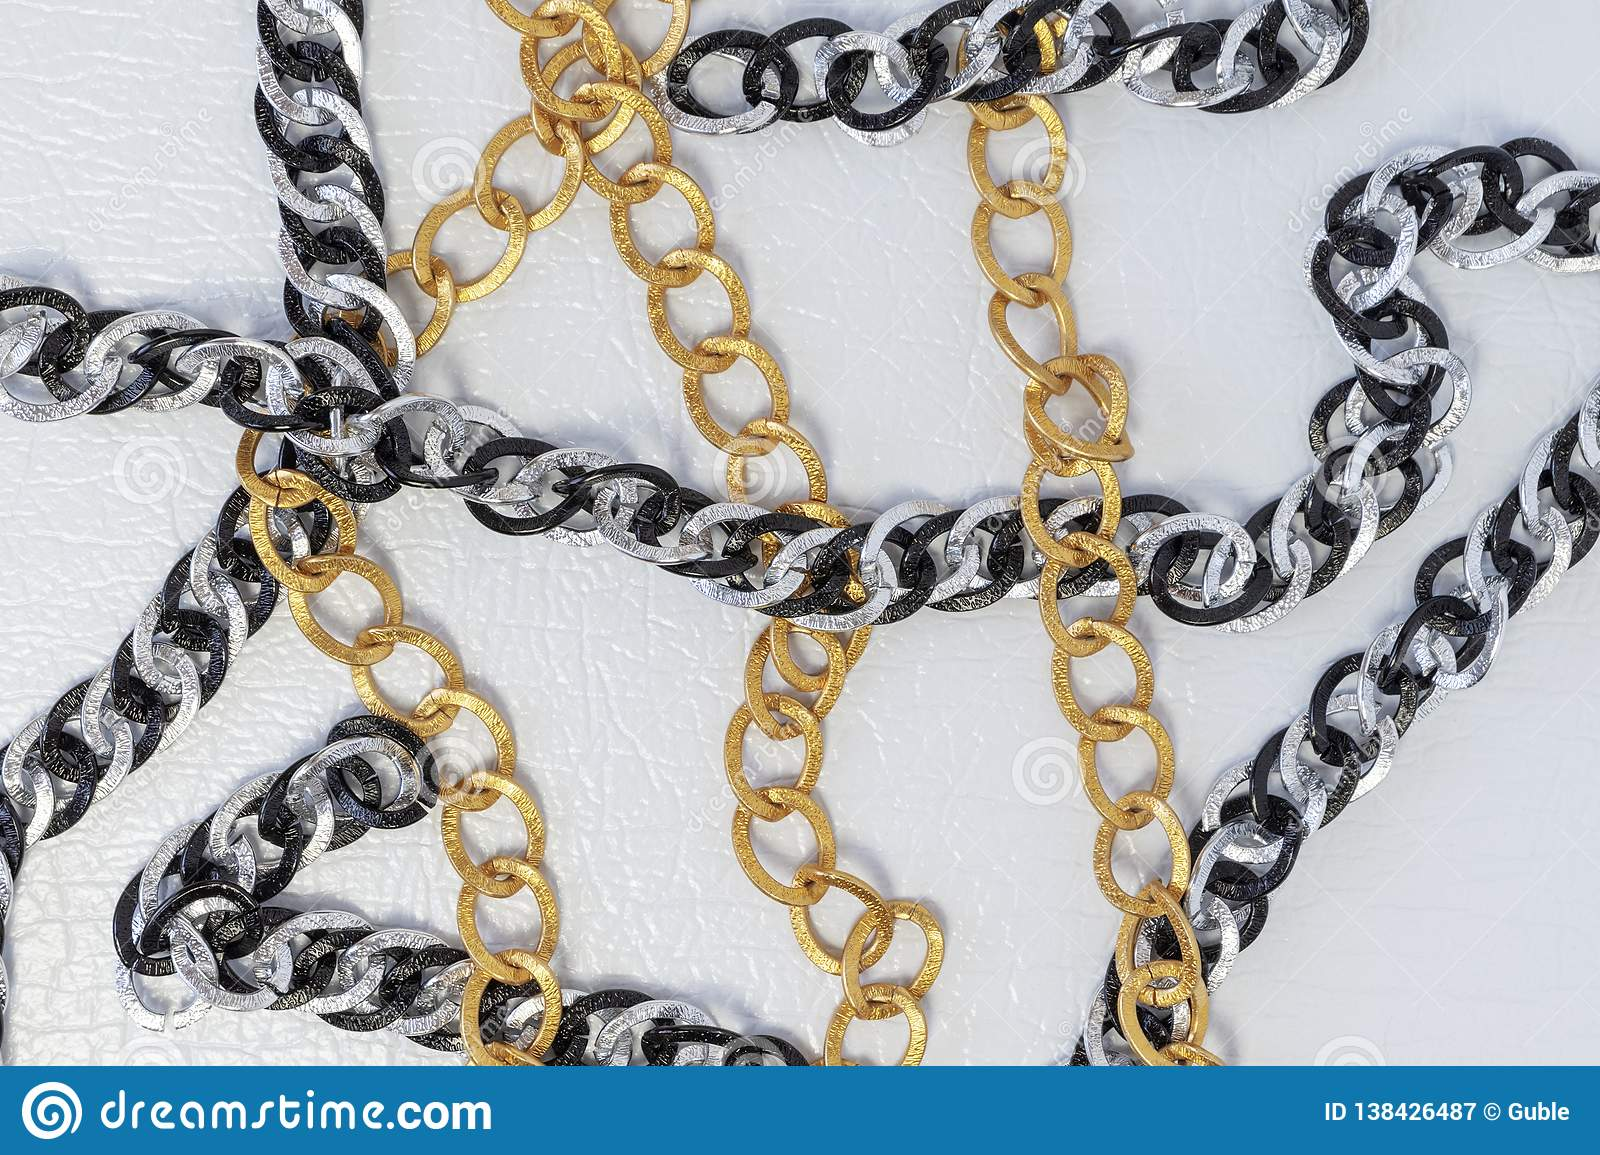 Chains on white leather background. Silver and gold color chains